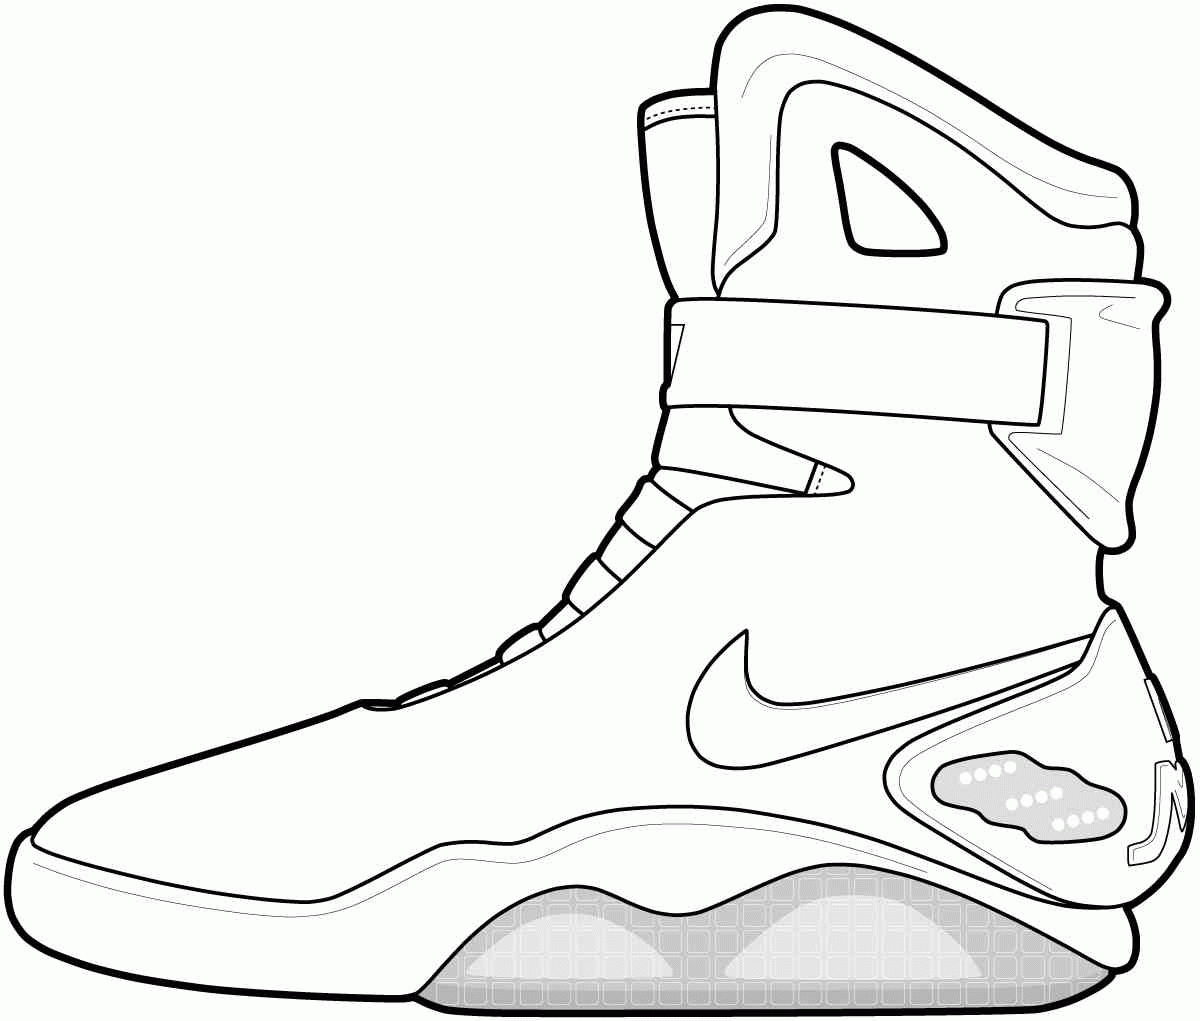 jordan coloring pages - jordan shoe coloring pages